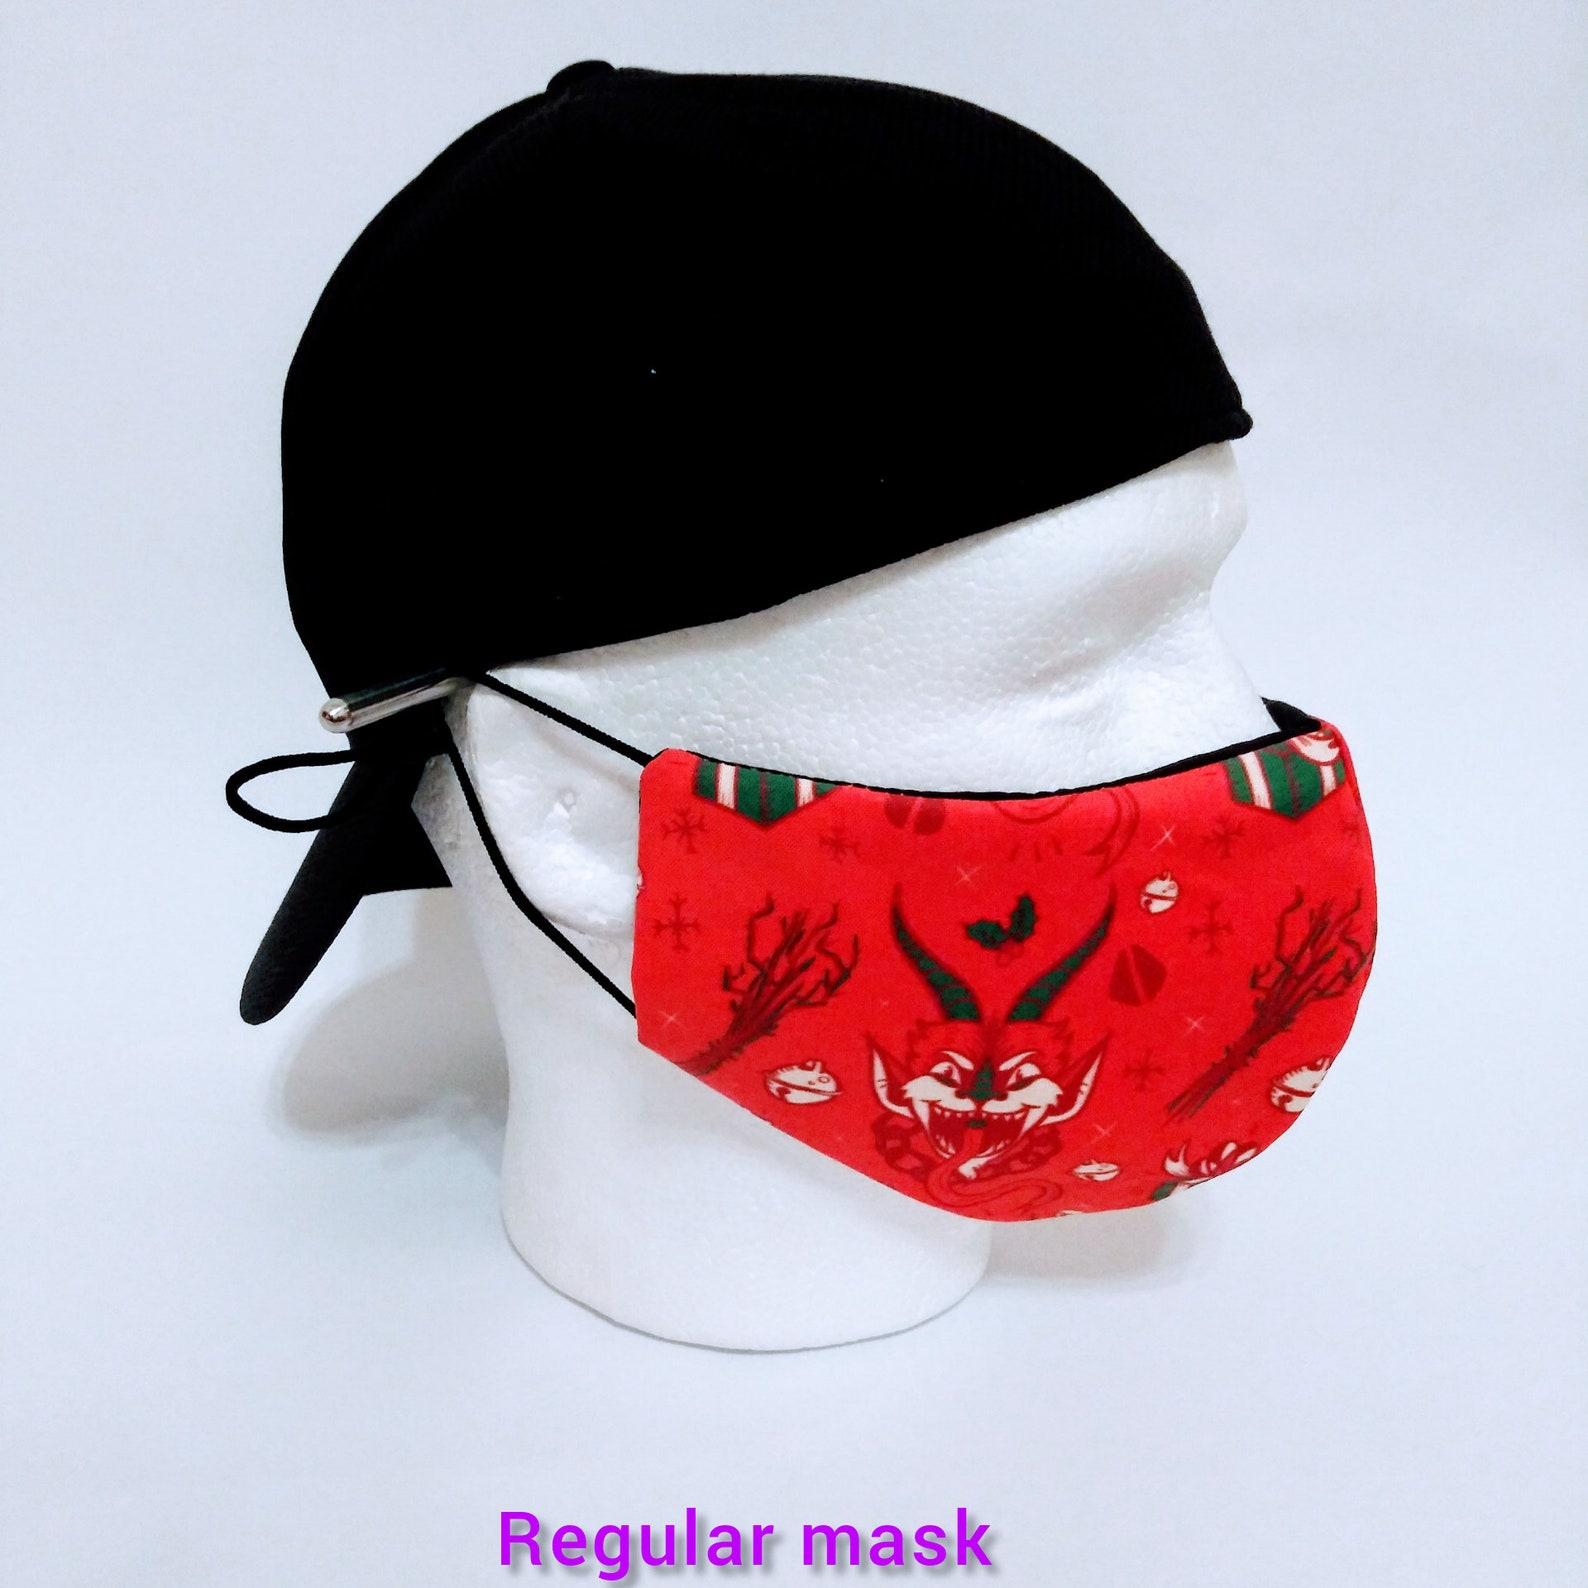 Krampus Fitted Face Mask, Flexible Nose Wire, Soft Elastic Straps w/Adj Beads,3-Layer,Reusable,Washable, Comfortable!